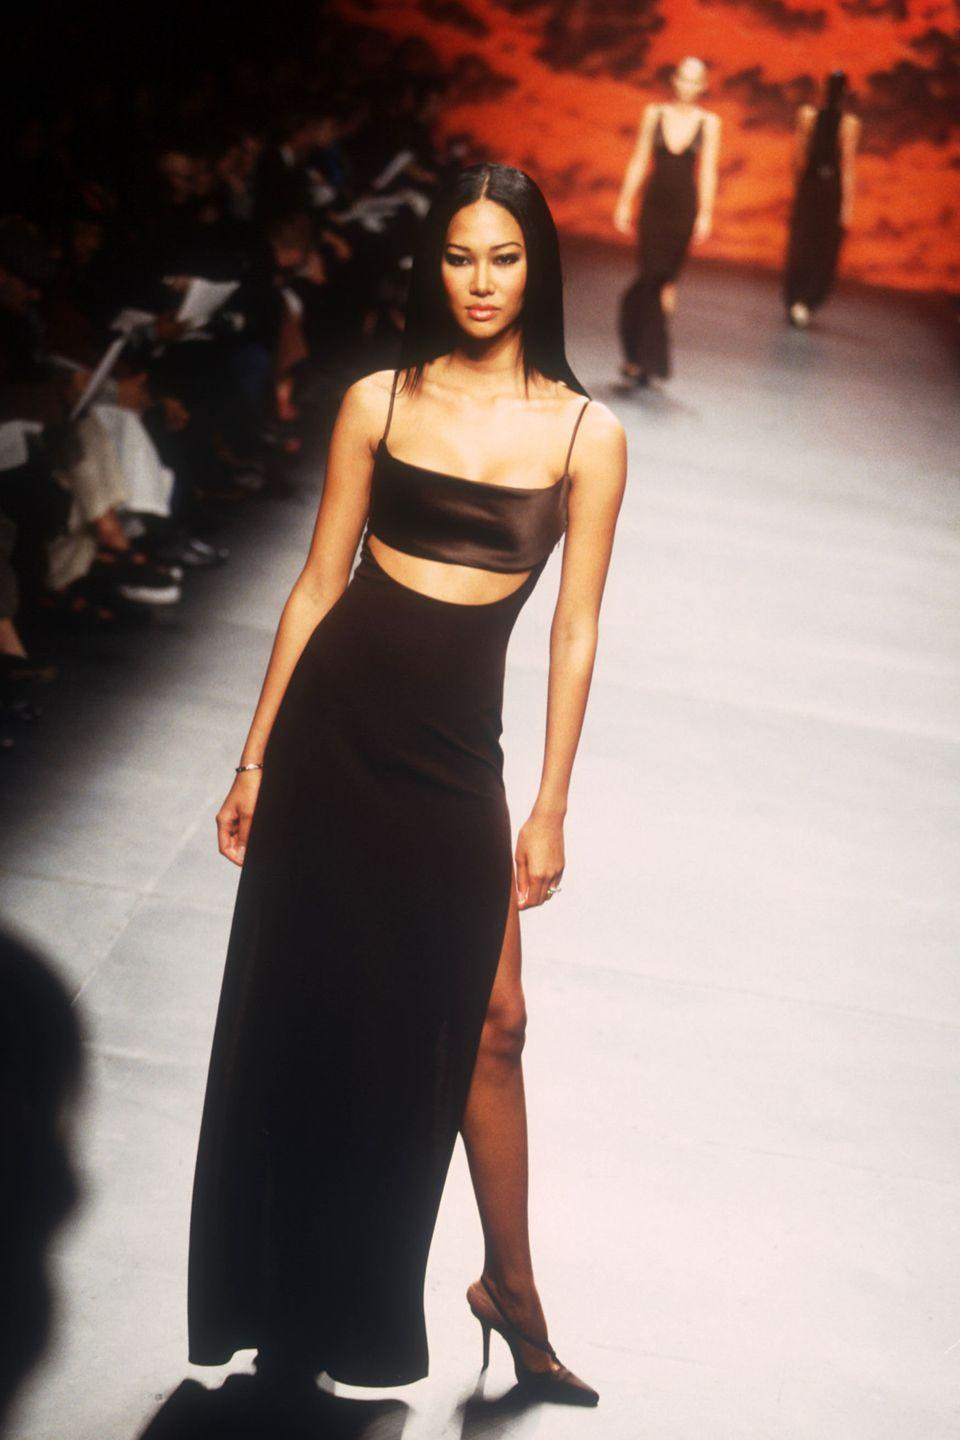 """<p>In her early teen years, Karl Lagerfeld <a href=""""https://www.yahoo.com/lifestyle/kimora-lee-simmons-positioning-baby-110000558.html"""" data-ylk=""""slk:awarded;outcm:mb_qualified_link;_E:mb_qualified_link;ct:story;"""" class=""""link rapid-noclick-resp yahoo-link"""">awarded</a> Simmons with a modeling contract for the luxury fashion house Chanel. Her modeling career quickly gained speed after that. </p>"""